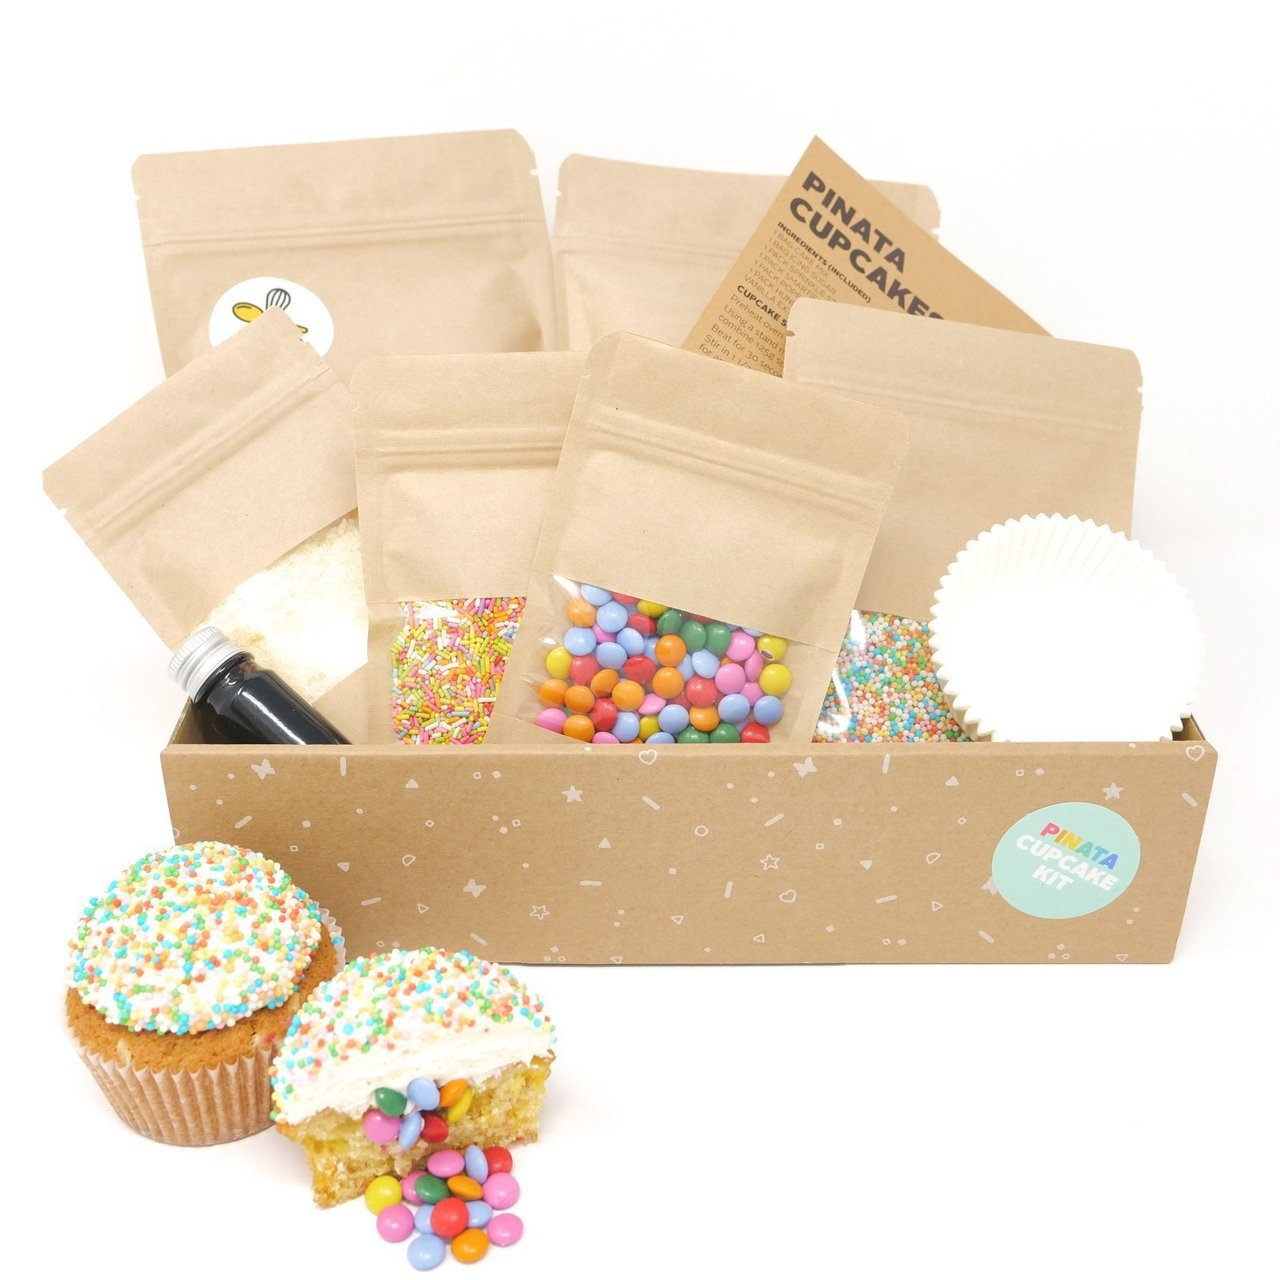 Pinata Cupcake Baking Kit